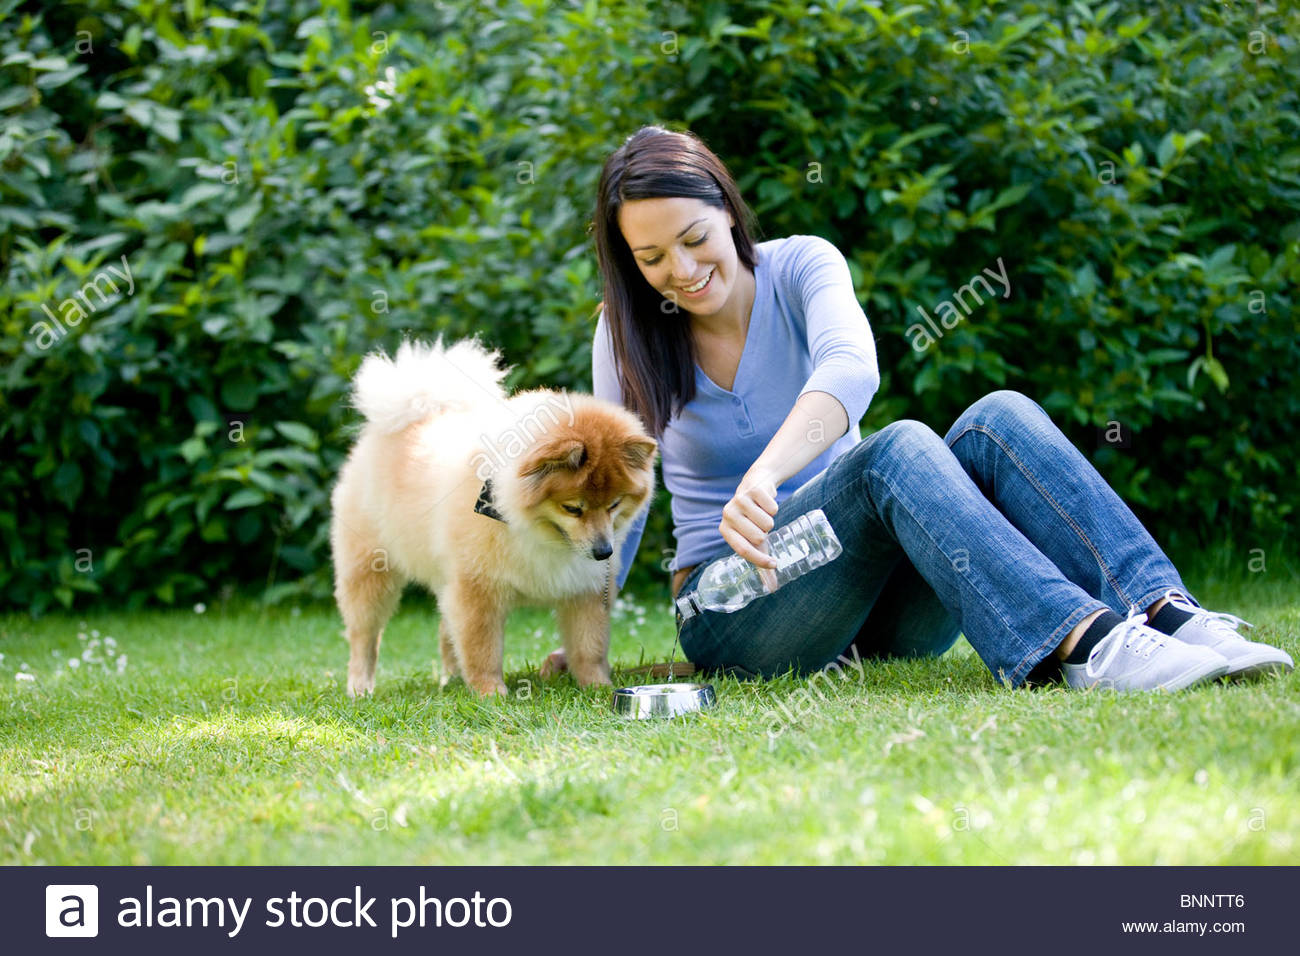 A woman sitting on the grass, pouring her dog a drink of water - Stock Image